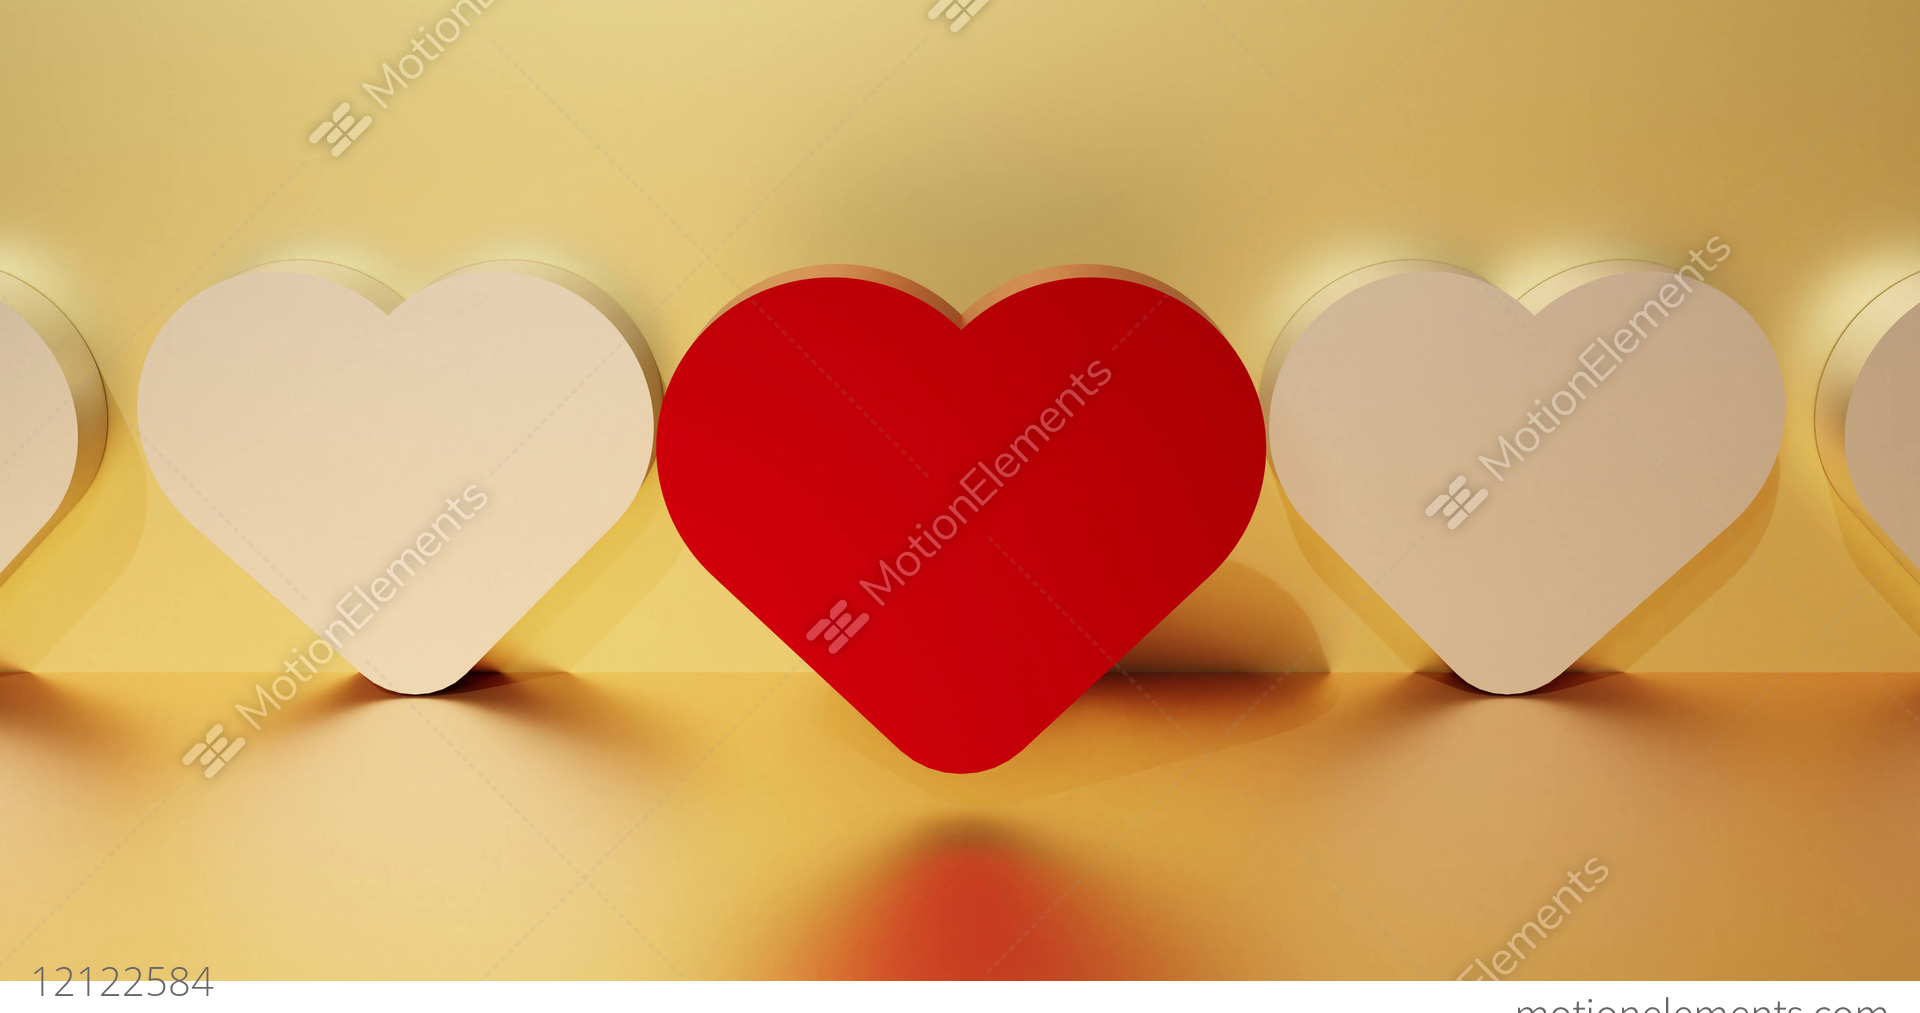 Red Heart As A Symbol Of Love Dating Service Search Concept 3d